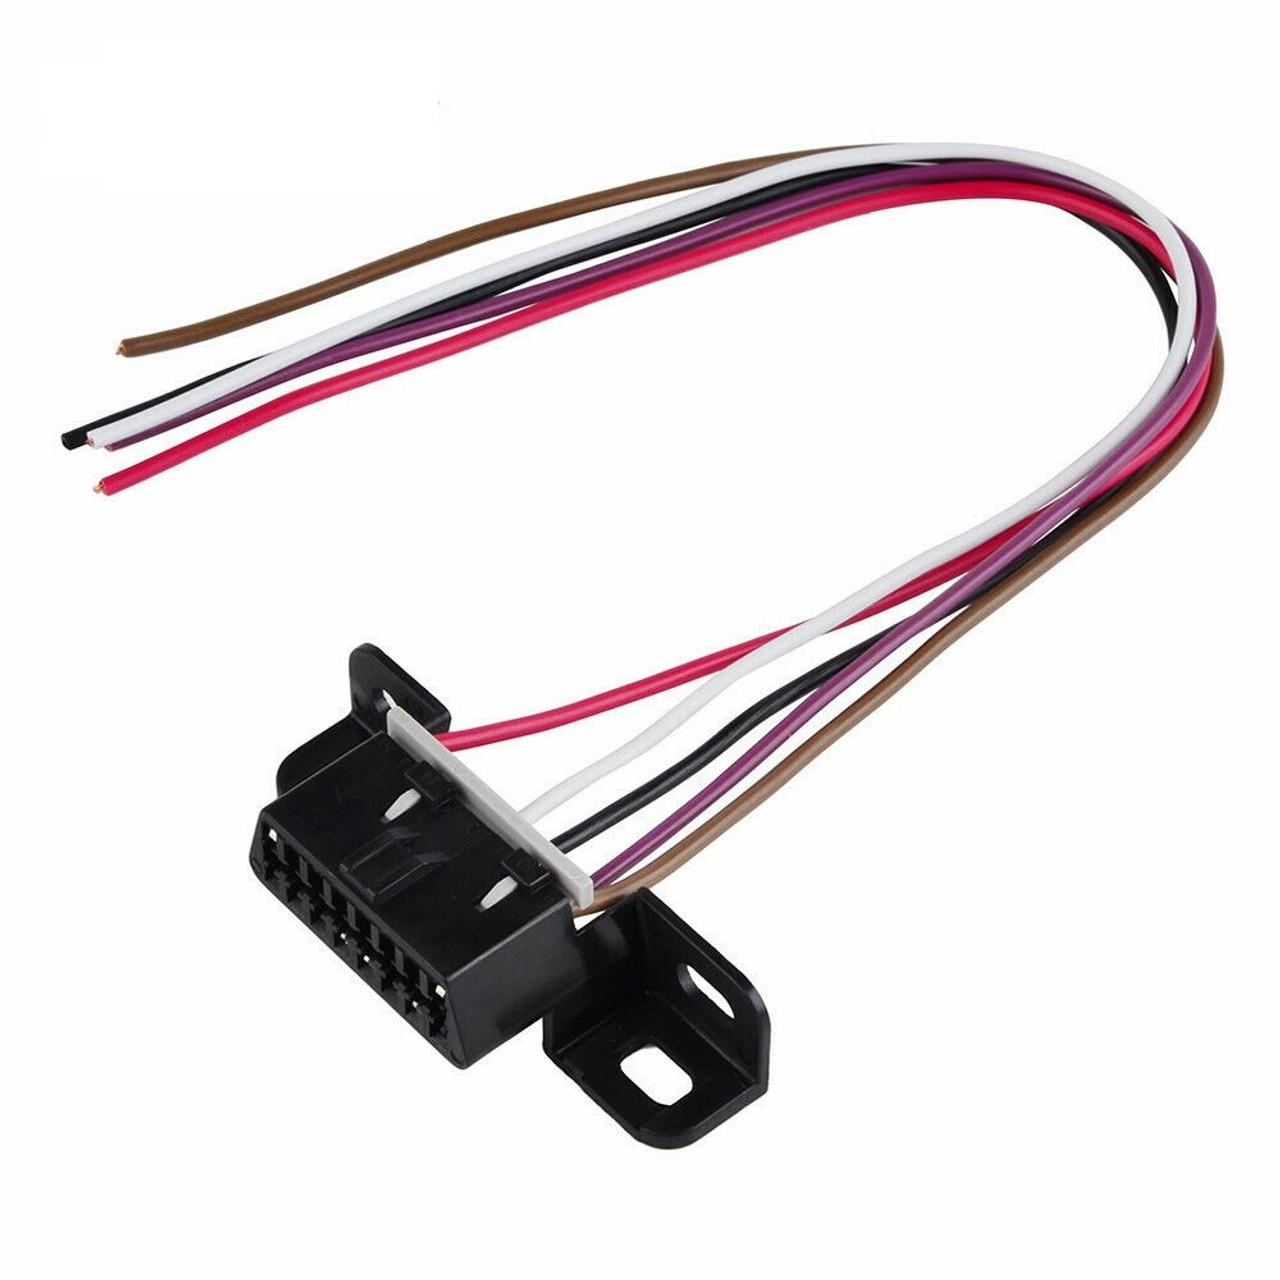 OBDII OBD2 Wiring Harness Connector Pigtail Harness Fits LS1 LT1 data link  Camaro Firebird Pontiac and Many Other Applications